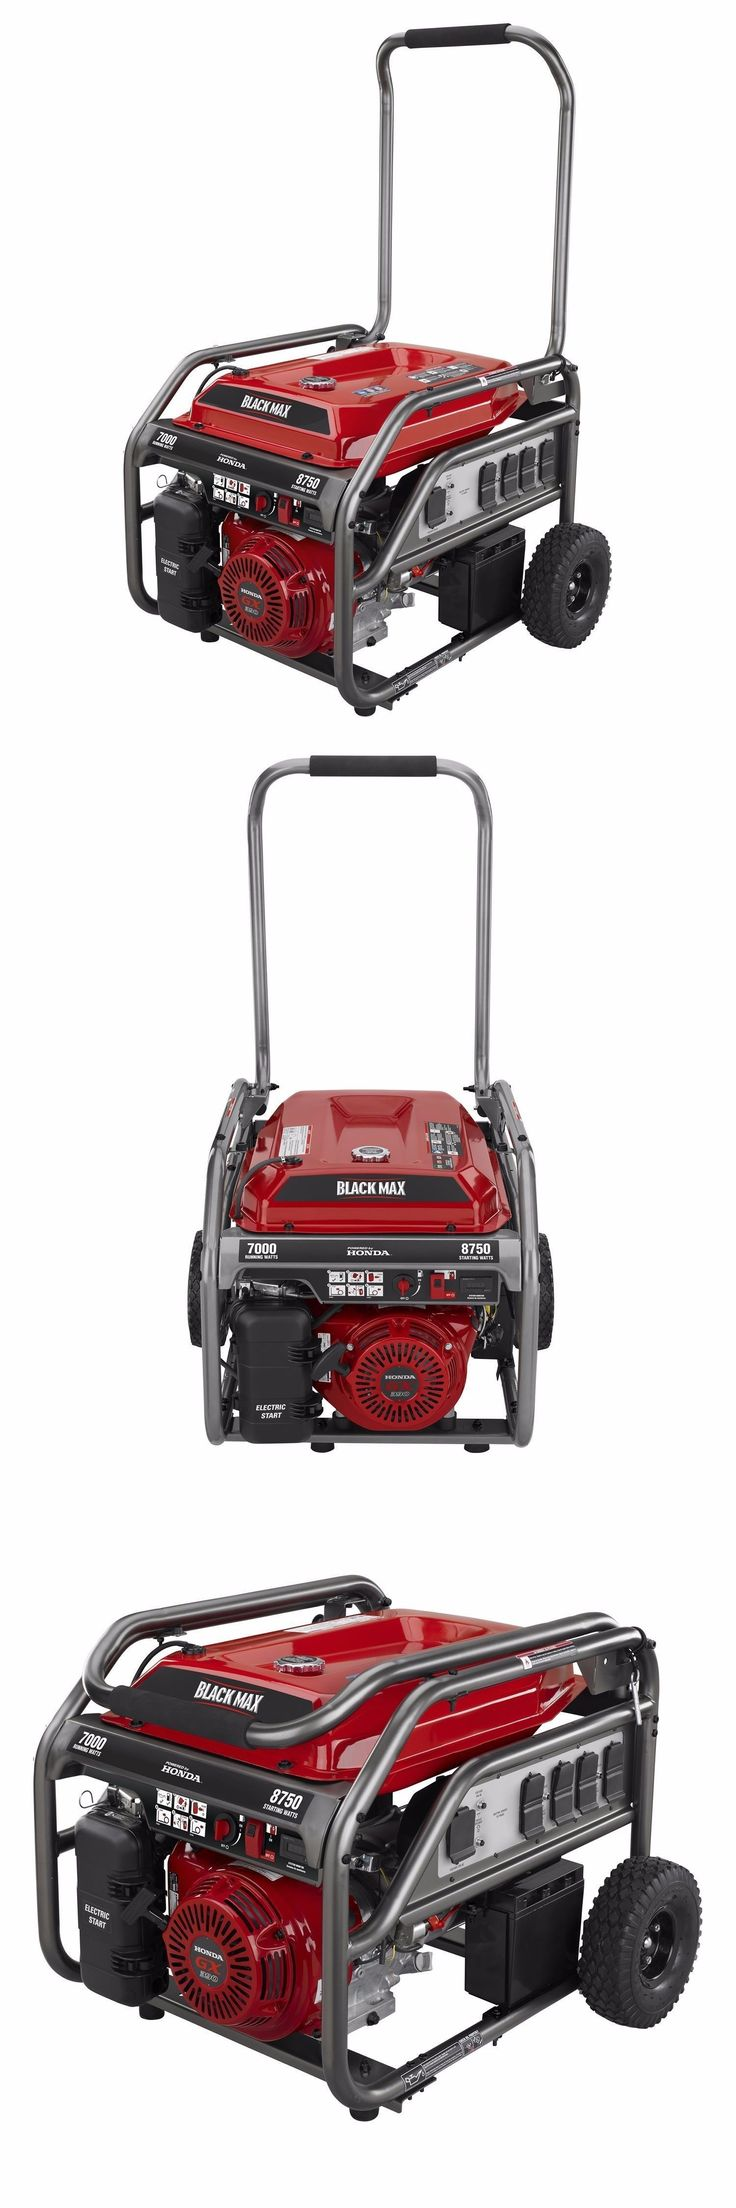 Generators and Heaters 16039: Black Max 7,000 8,750 Watt Electric Start Portable Gas Generator (Honda Engine!) -> BUY IT NOW ONLY: $950 on eBay!